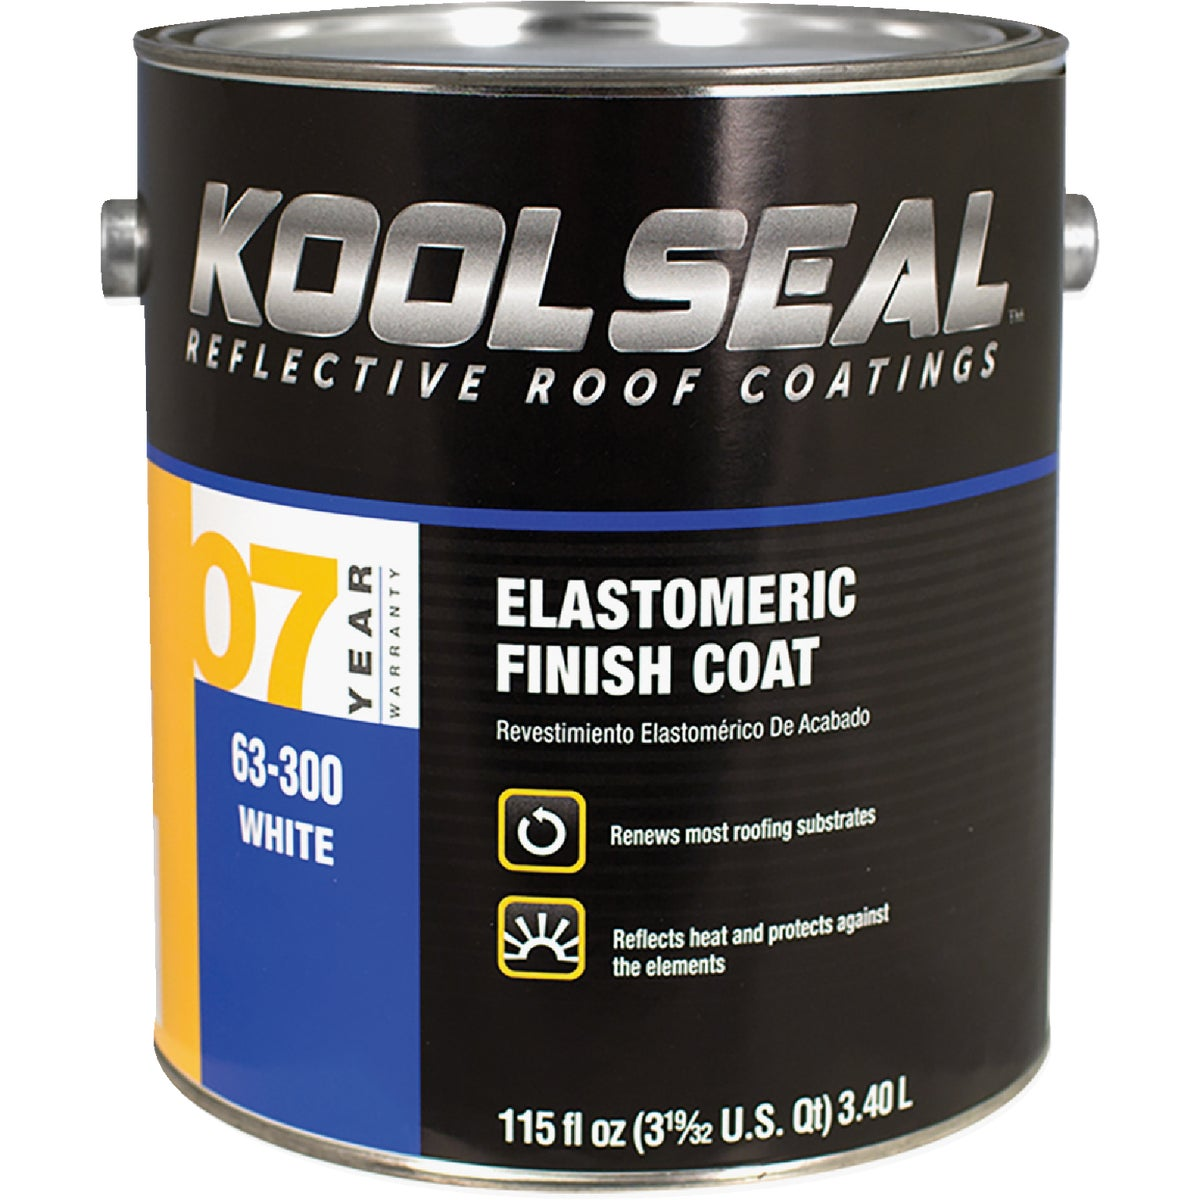 GAL ELASTOMRC RF COATING - KST063300-16 by Kool Seal